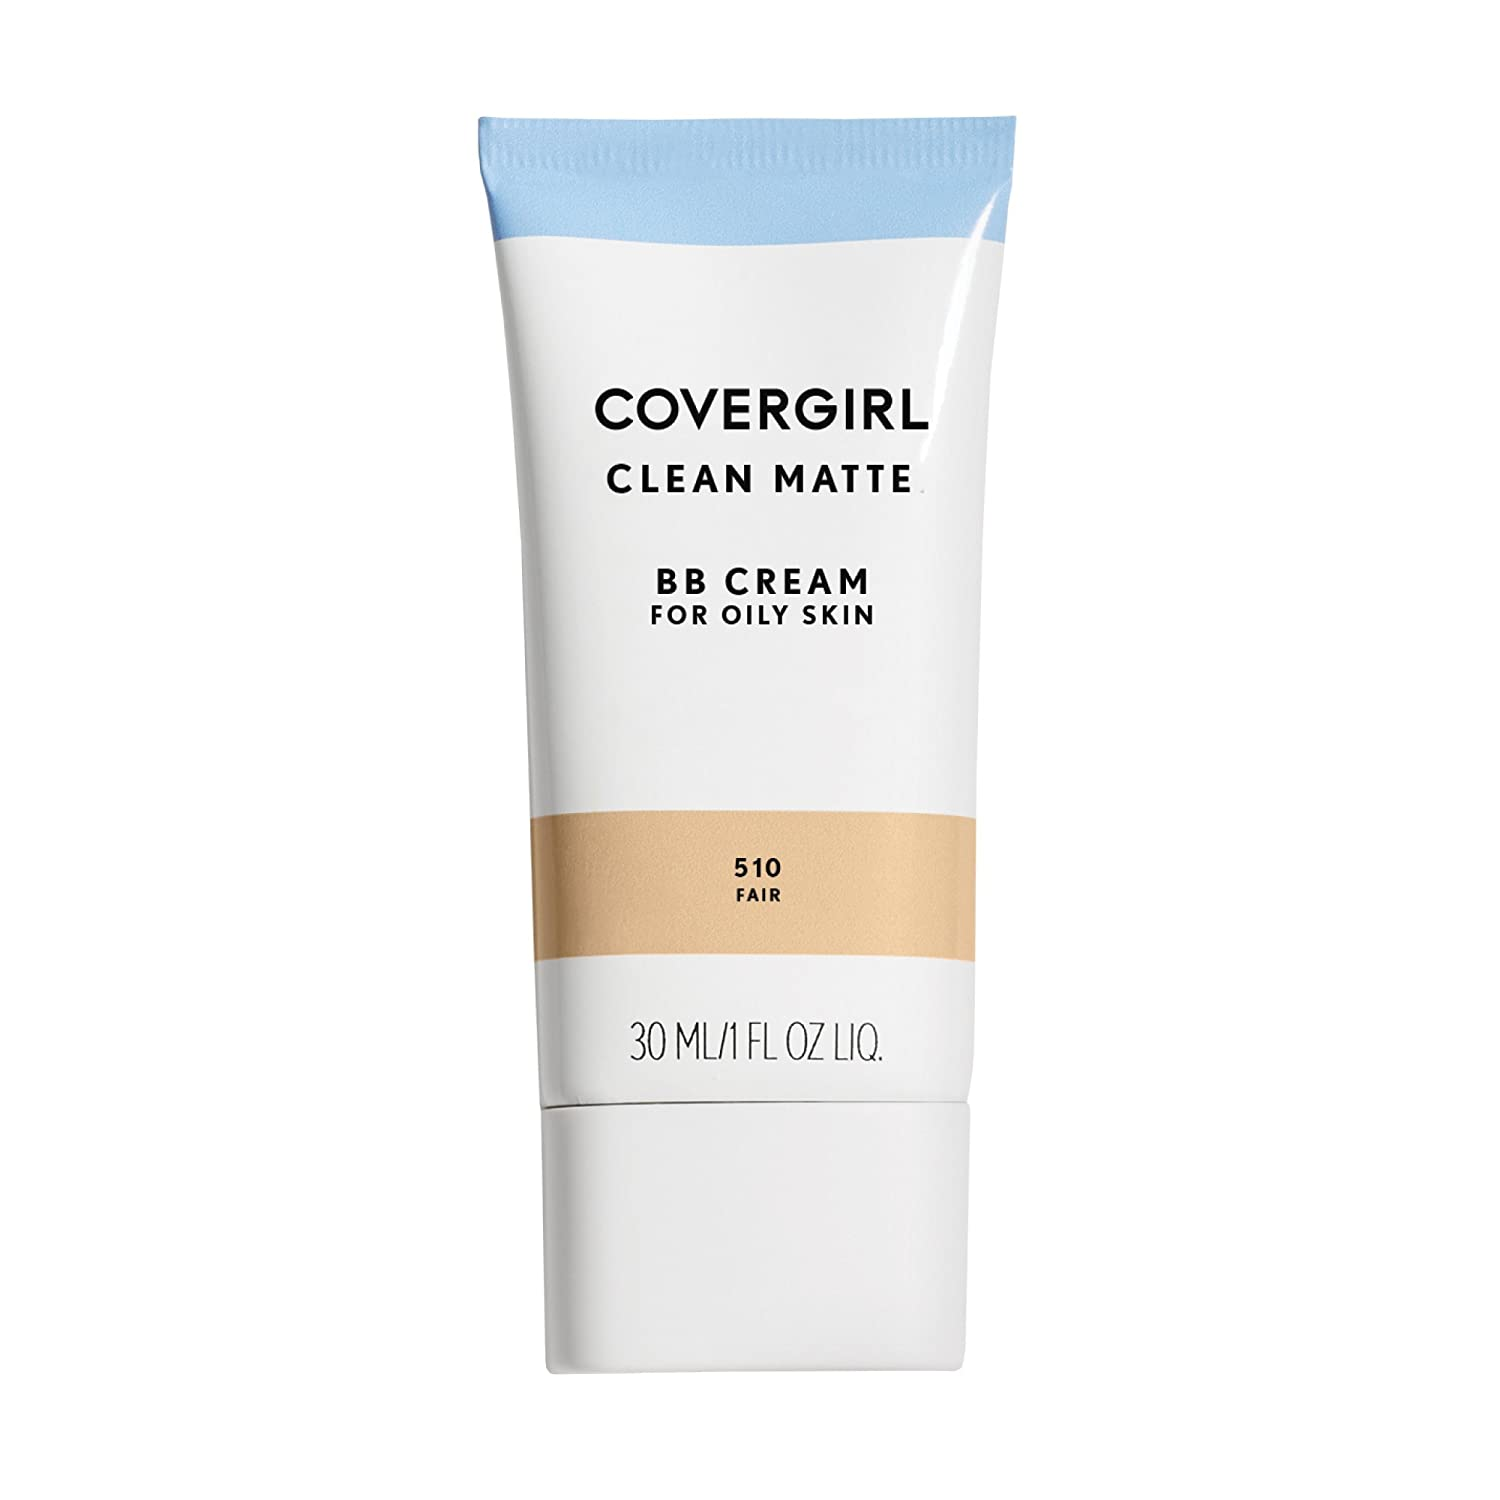 Covergirl Clean Matte BB Cream for work makeup application